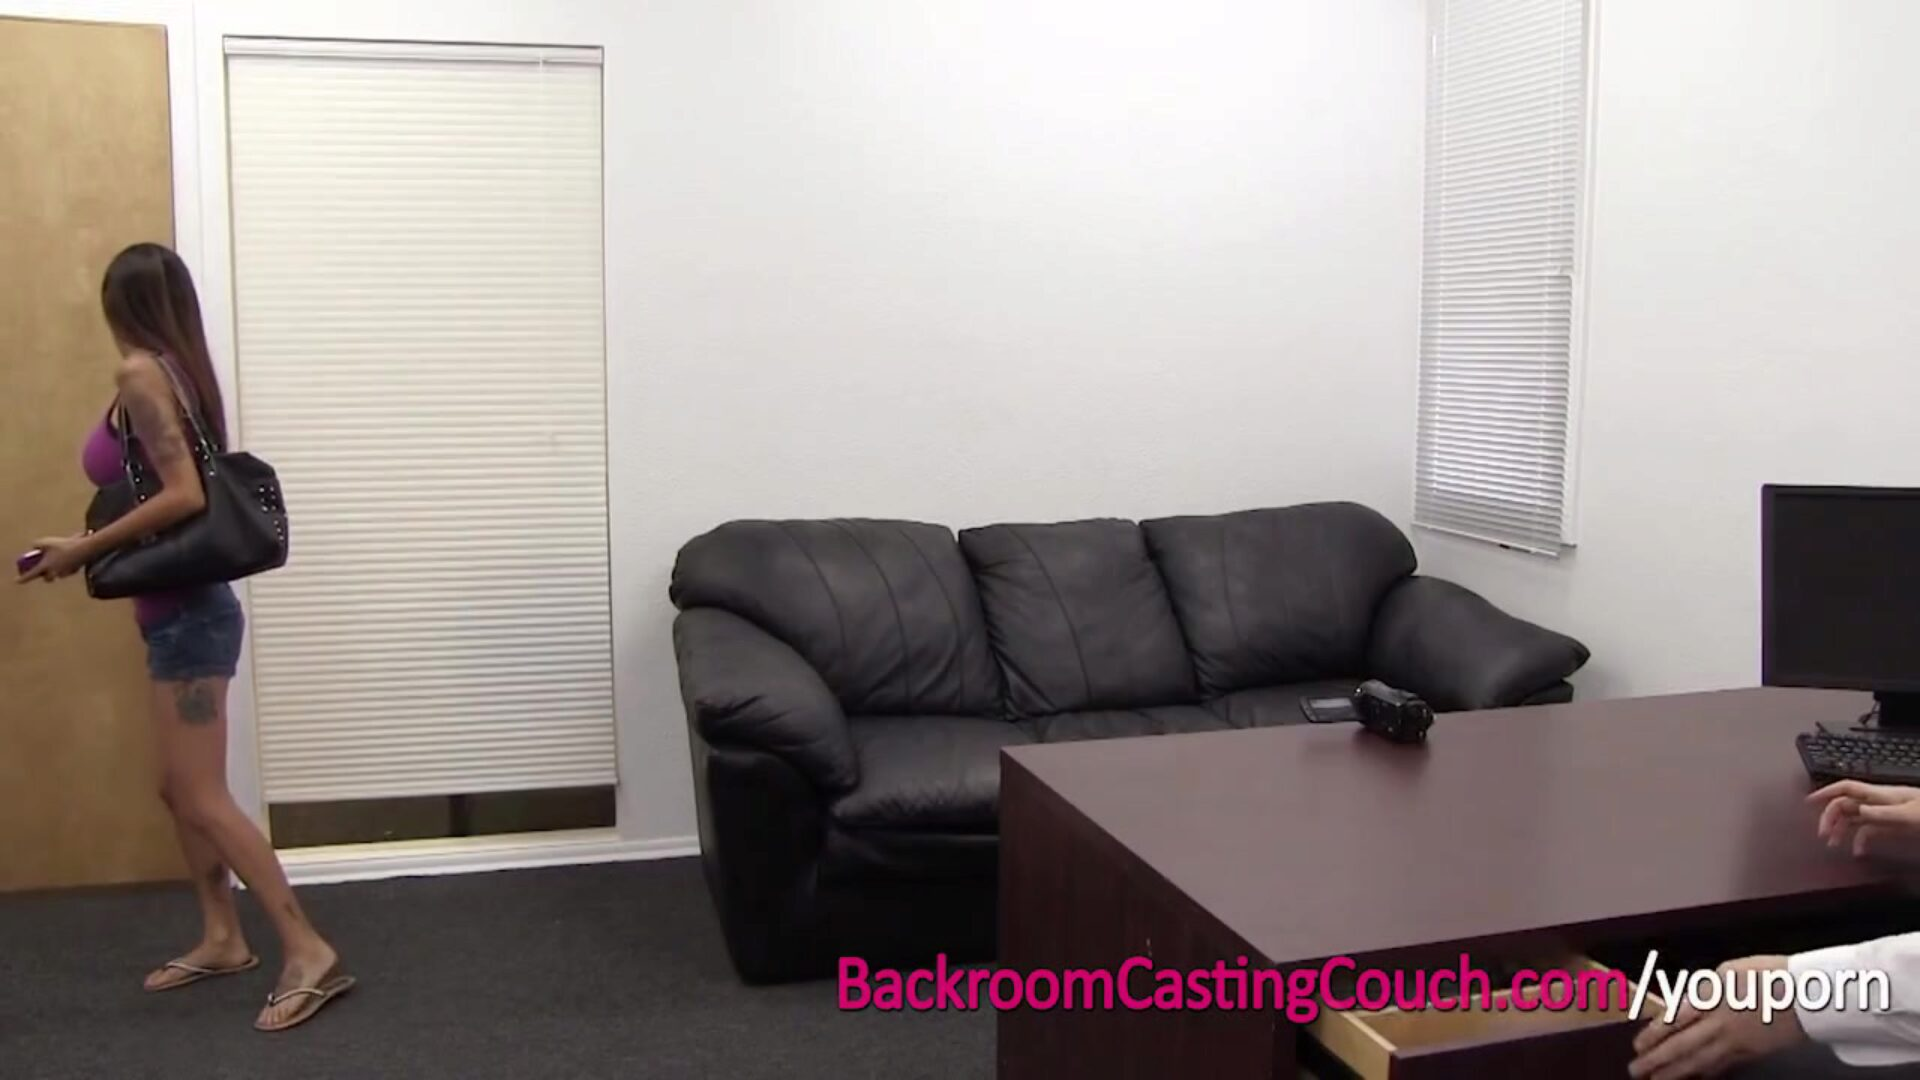 Fit Afton on Backroom Casting Couch - Full movie scene Small wang Drop those dick pills right now. All you need is a slightly 5-foot miniature spinner like Afton here. I promise your wang will look enormous in her face hole her cunt and her butt and you'll perceive like a king. Worked for me. Watch Afton's video - one of the nicest, best tittiest, and tiniest youthful damsels to mercy the office this year - and u know it's true. Petite, giant love muffins let's me bang her booty while I push a bottle of grease inside her bawdy cleft and doesn't make complaints when I cum inside her out of saying her first even though she's not on birth manage Perfect hotty truly Now off to CVS for that Plan B.